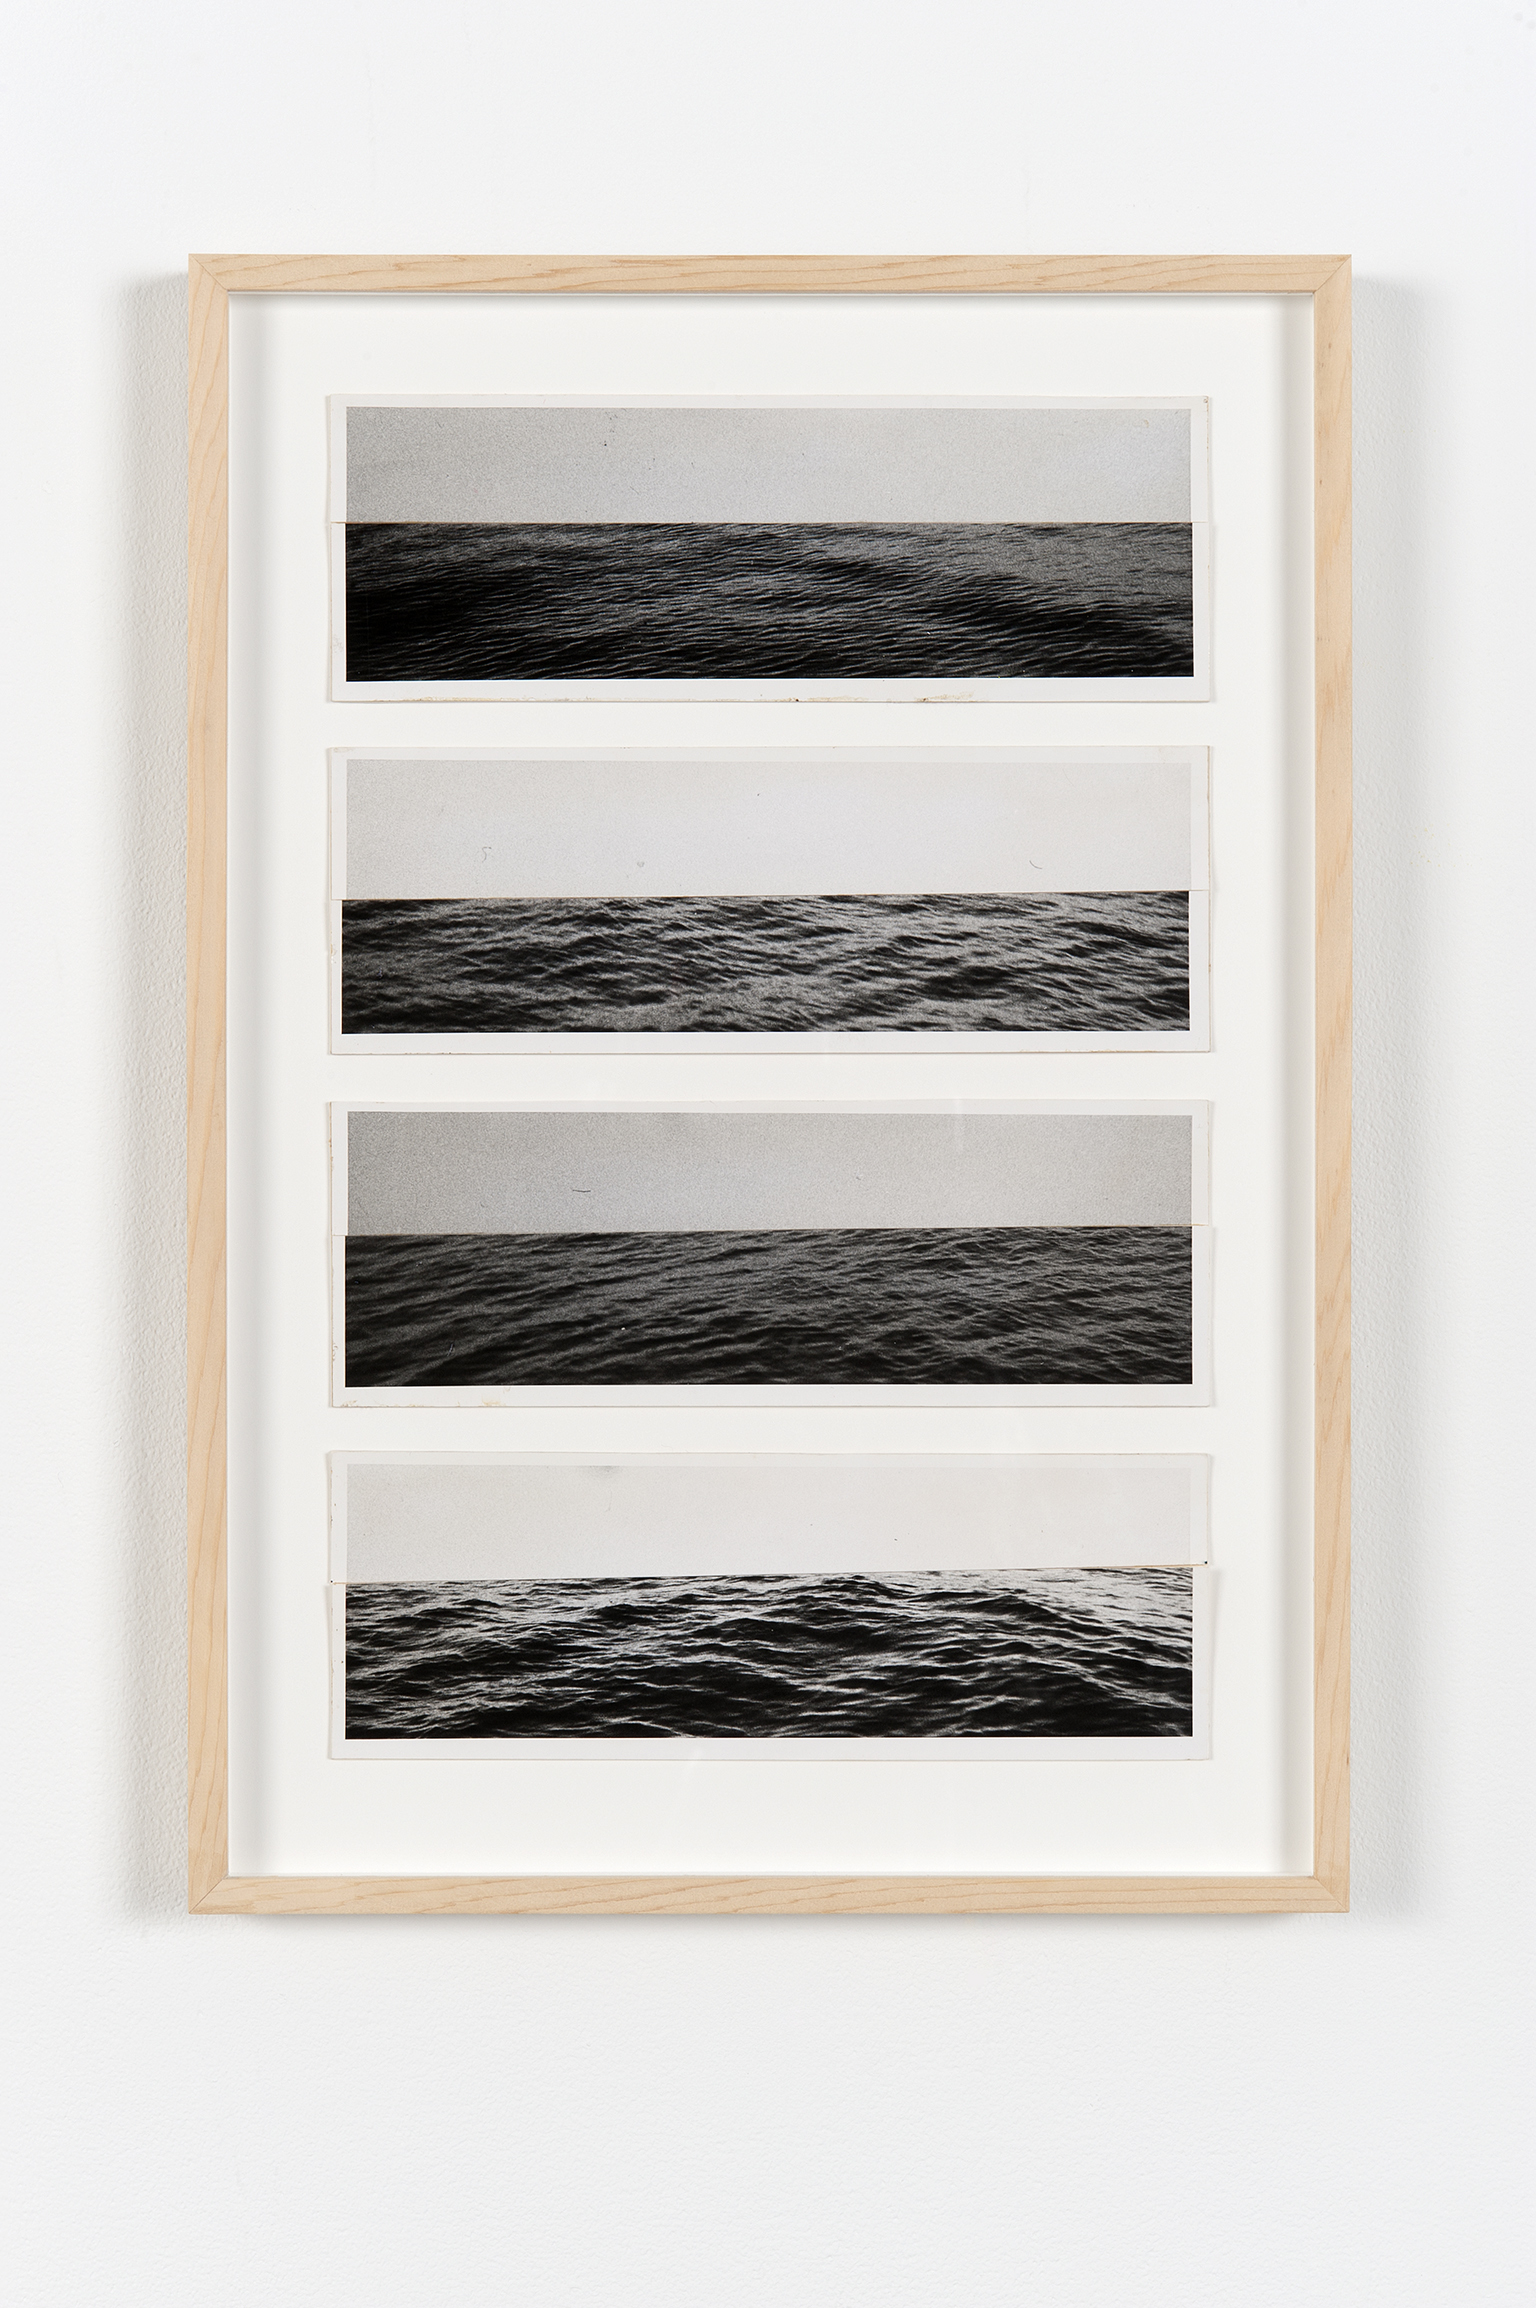 ​Robert Kleyn, Horizons, 1974–1975, hand-printed photographs on cardstock, 19 x 14 in. (48 x 34 cm) by